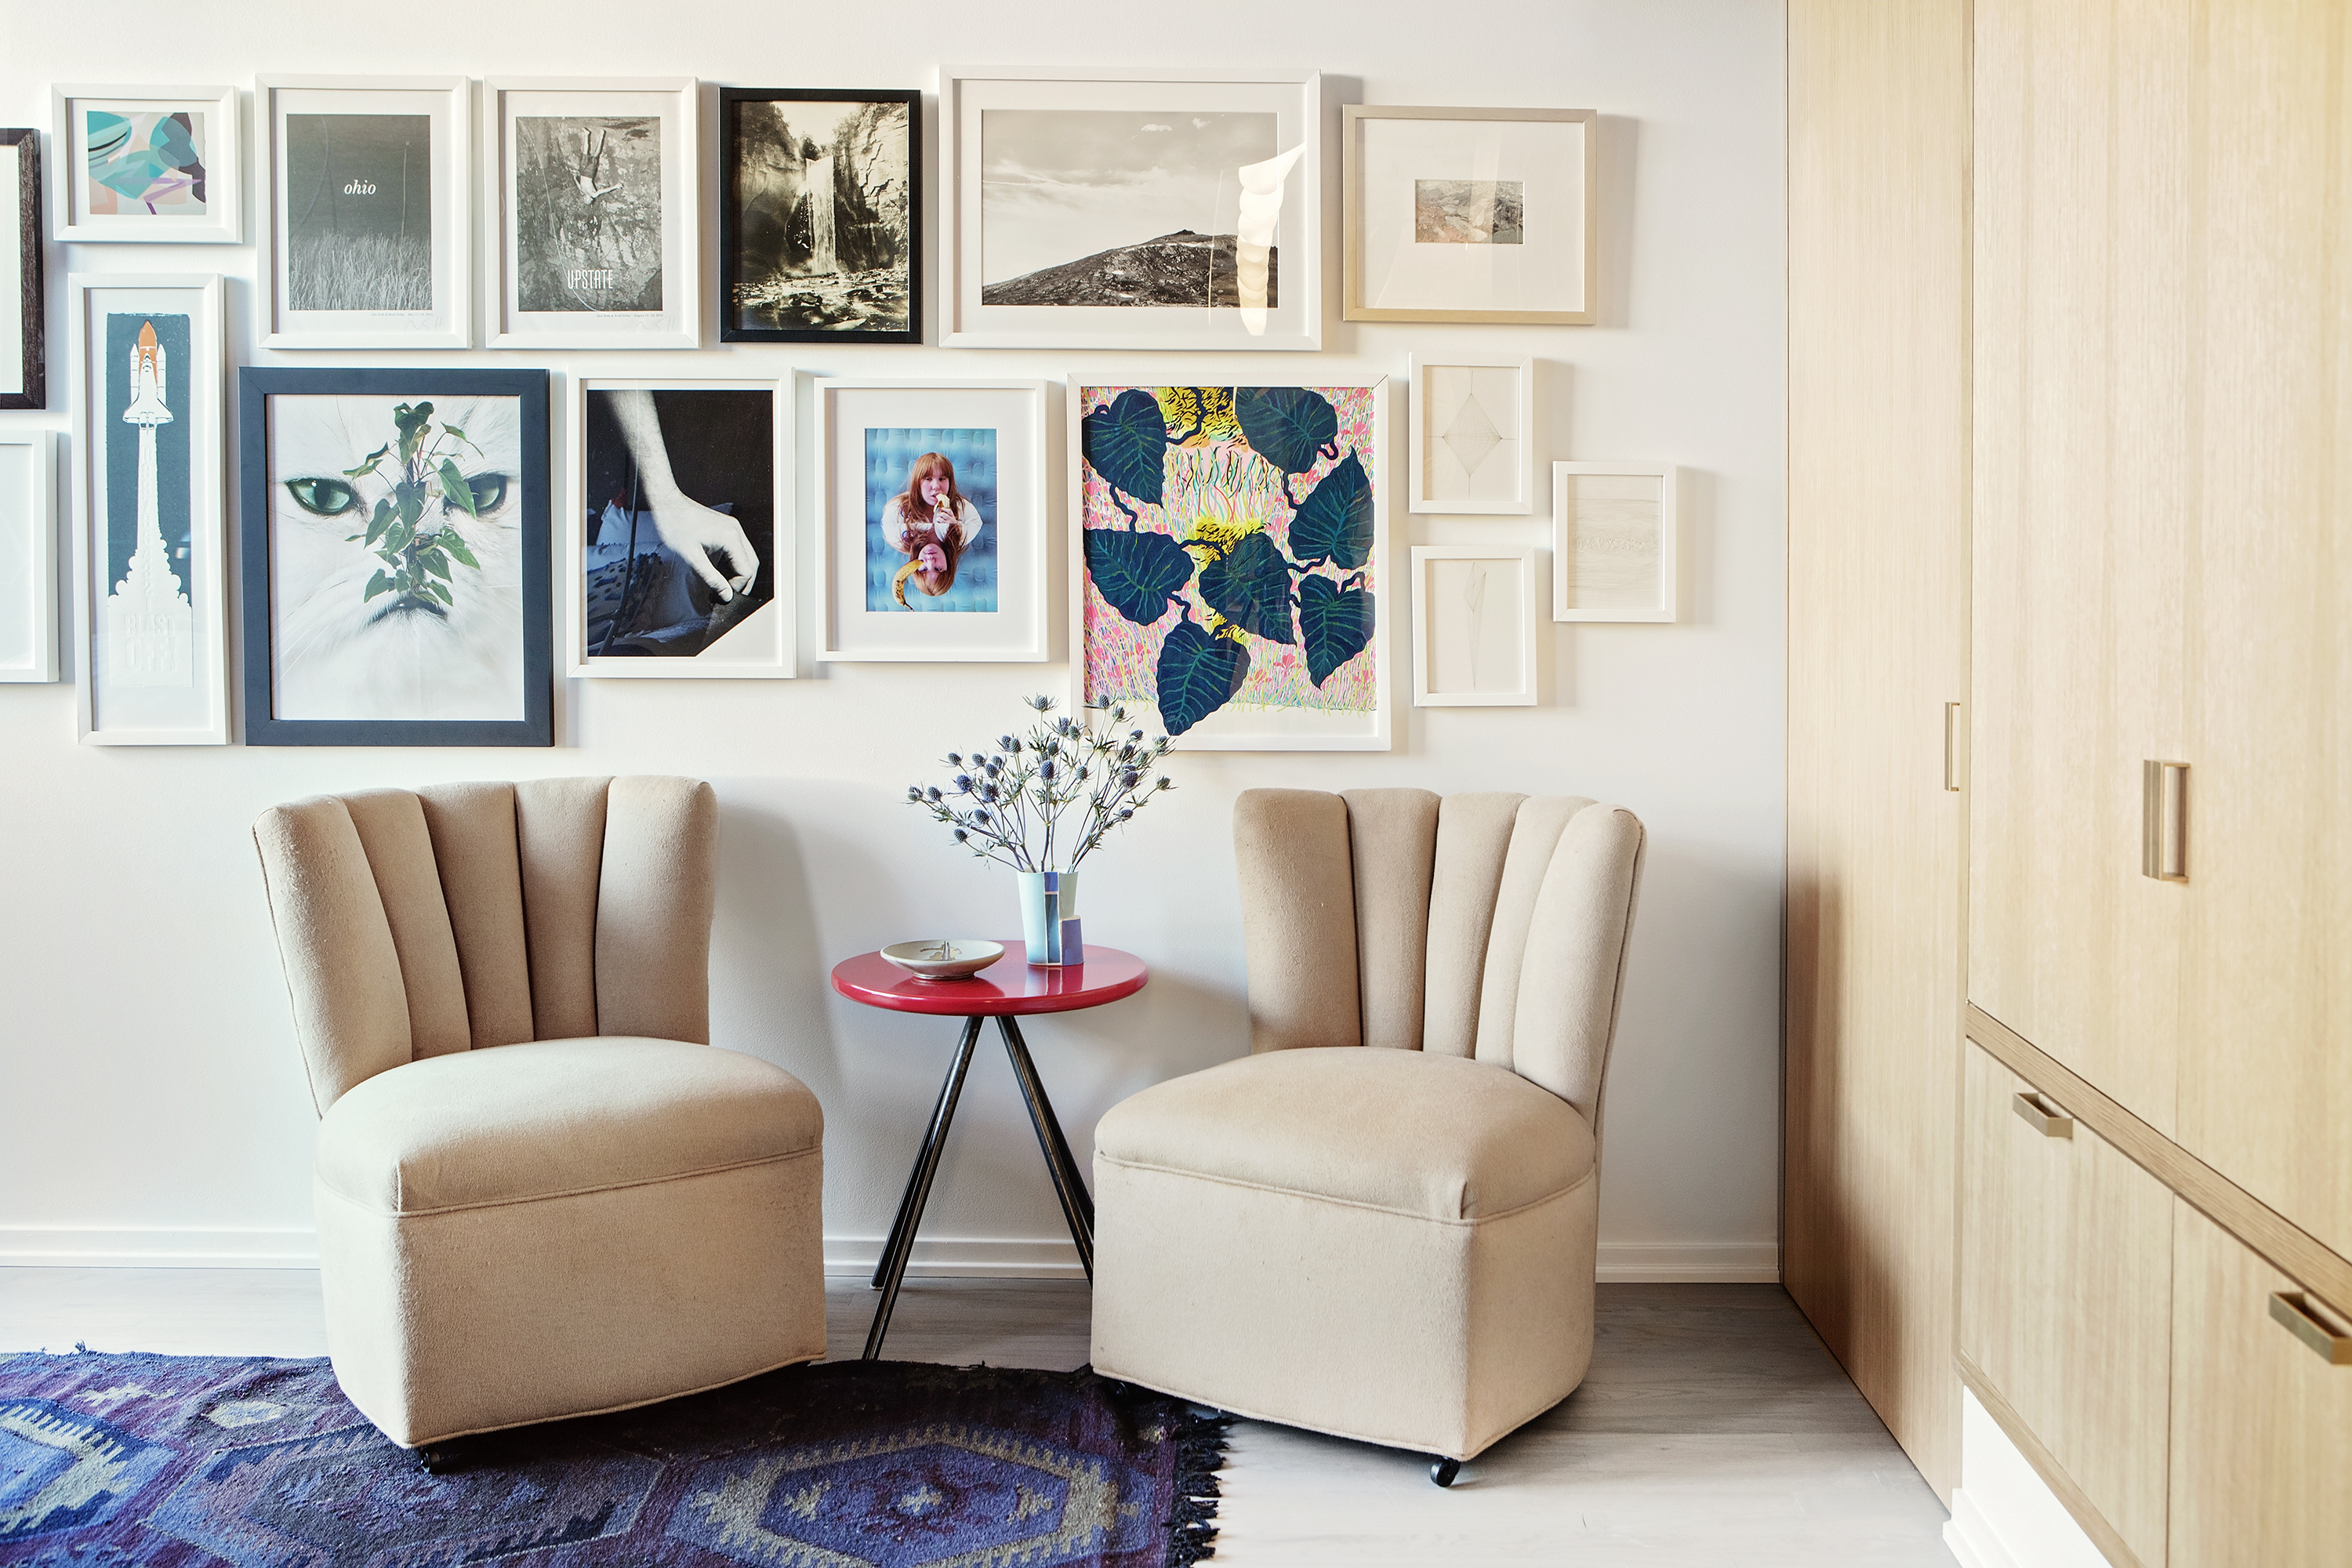 Perfect Moving In Together: How To Find Common Ground When Decorating